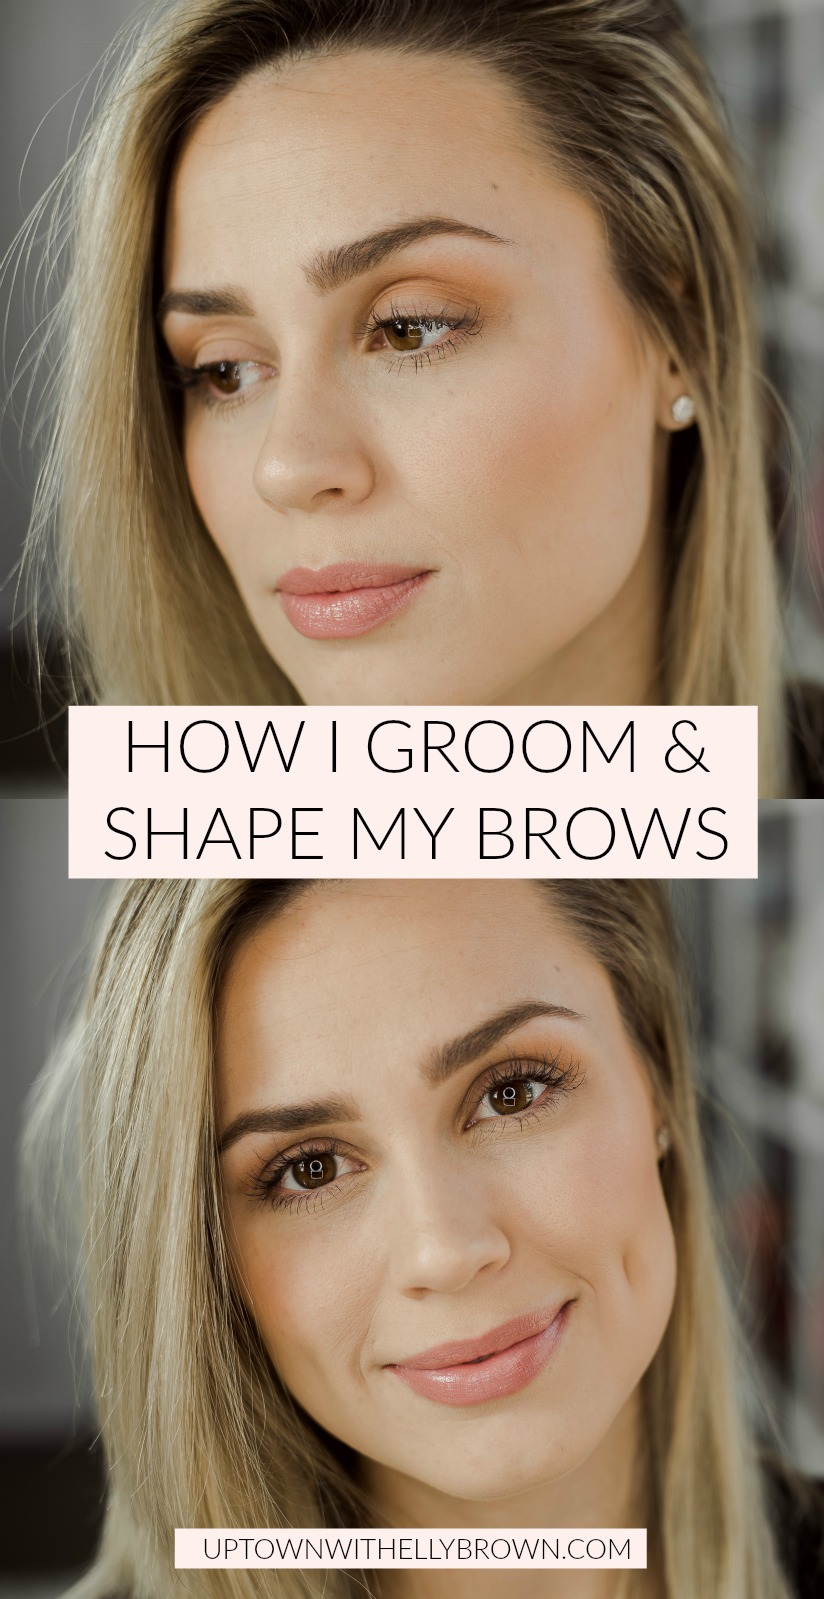 Looking for an easy tutorial on How To Do Your Eyebrows?! Houston beauty blogger Uptown with Elly Brown shares how she does hers!